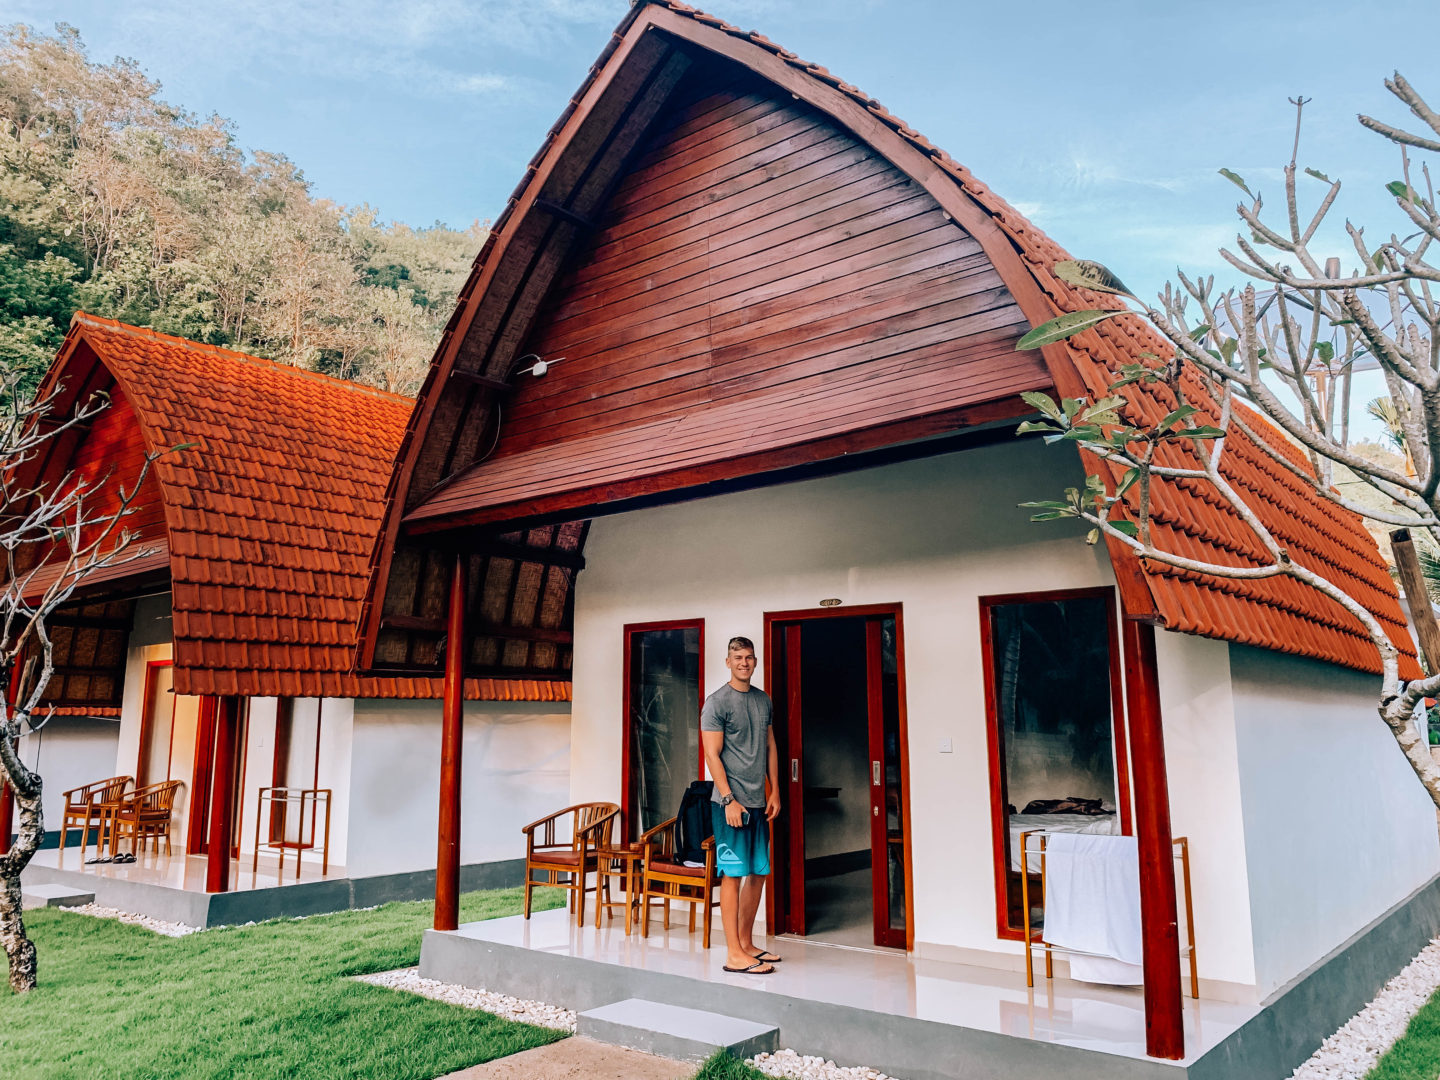 bali nusa penida ruru's bungalows booking accomodation ubytování trip indonesia brunettie travelling travel hacks